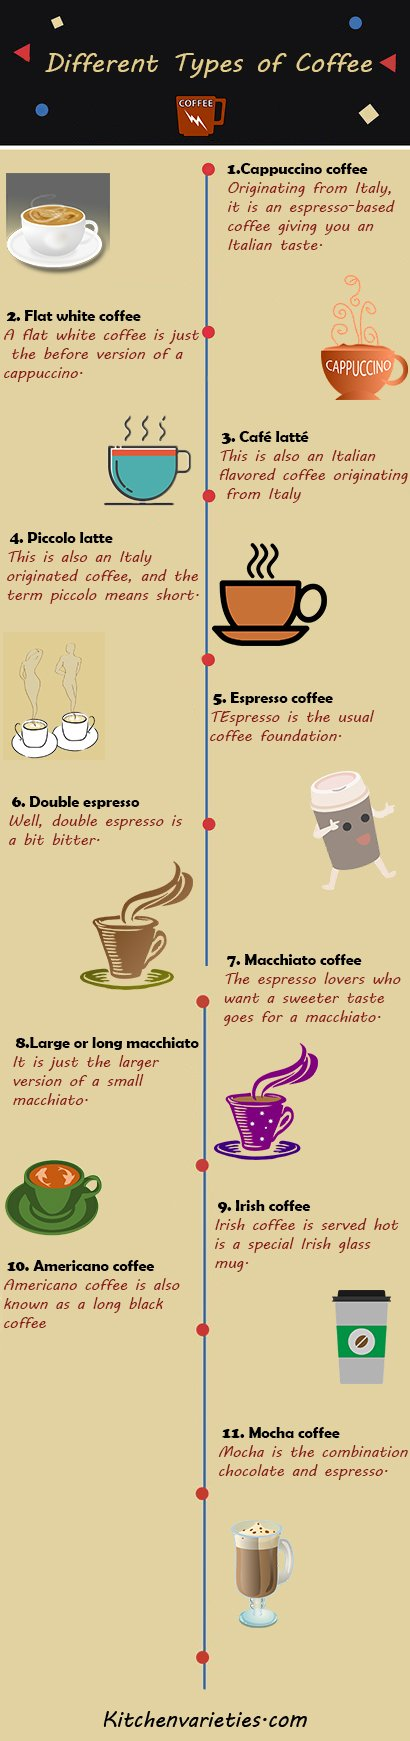 coffee-types